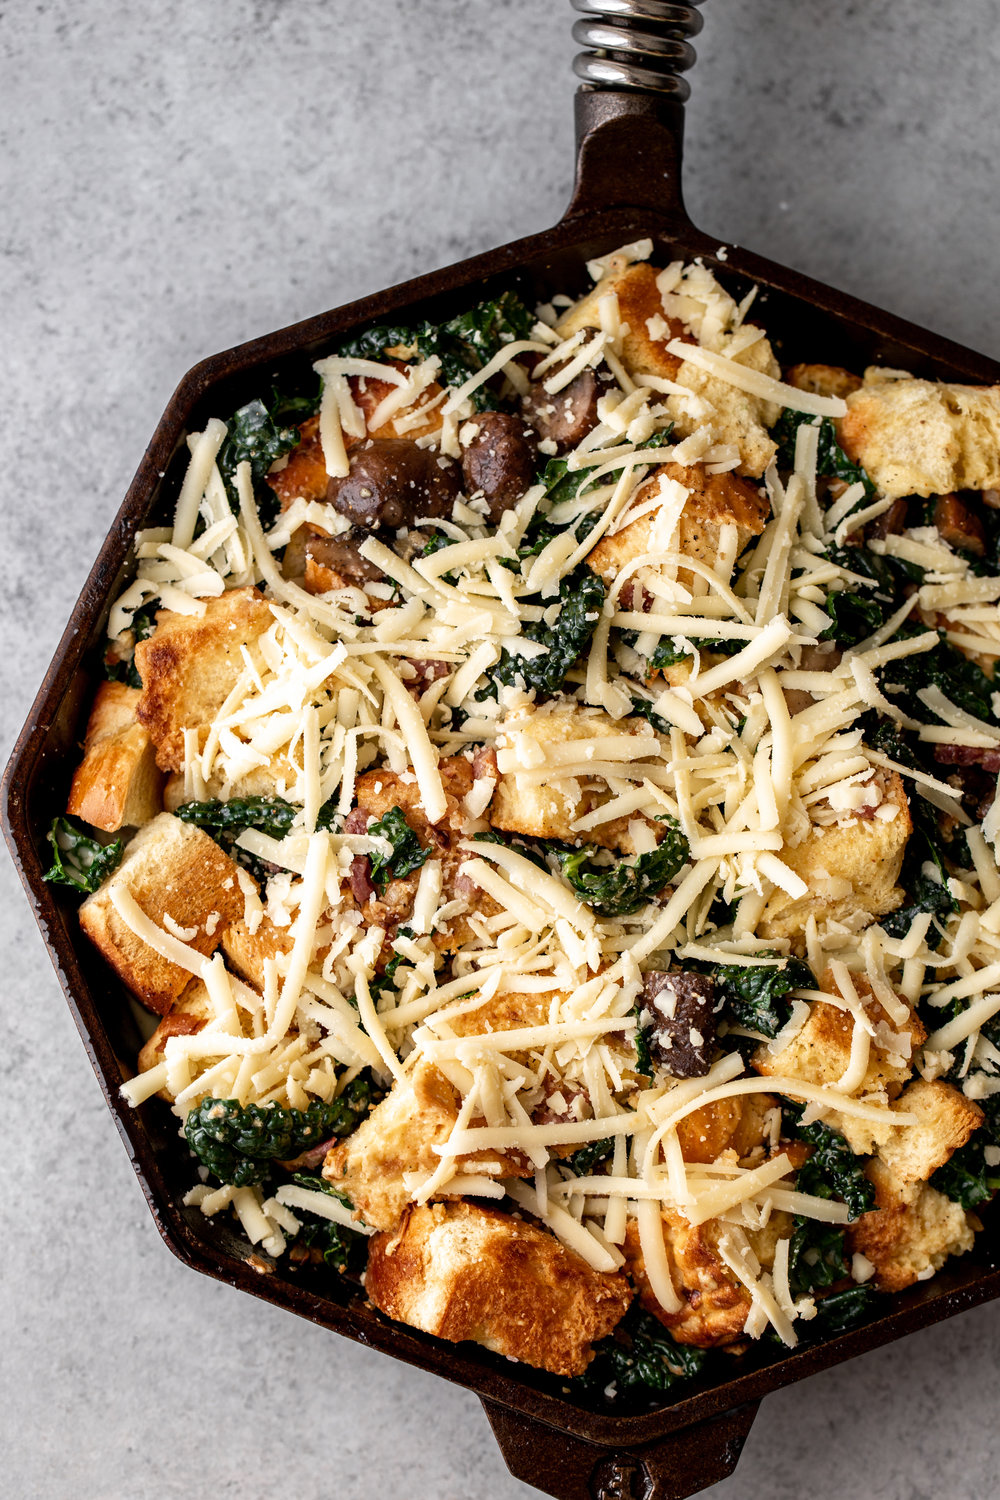 Cheesy Mushroom and Kale Brioche Strata with Pancetta oven baked